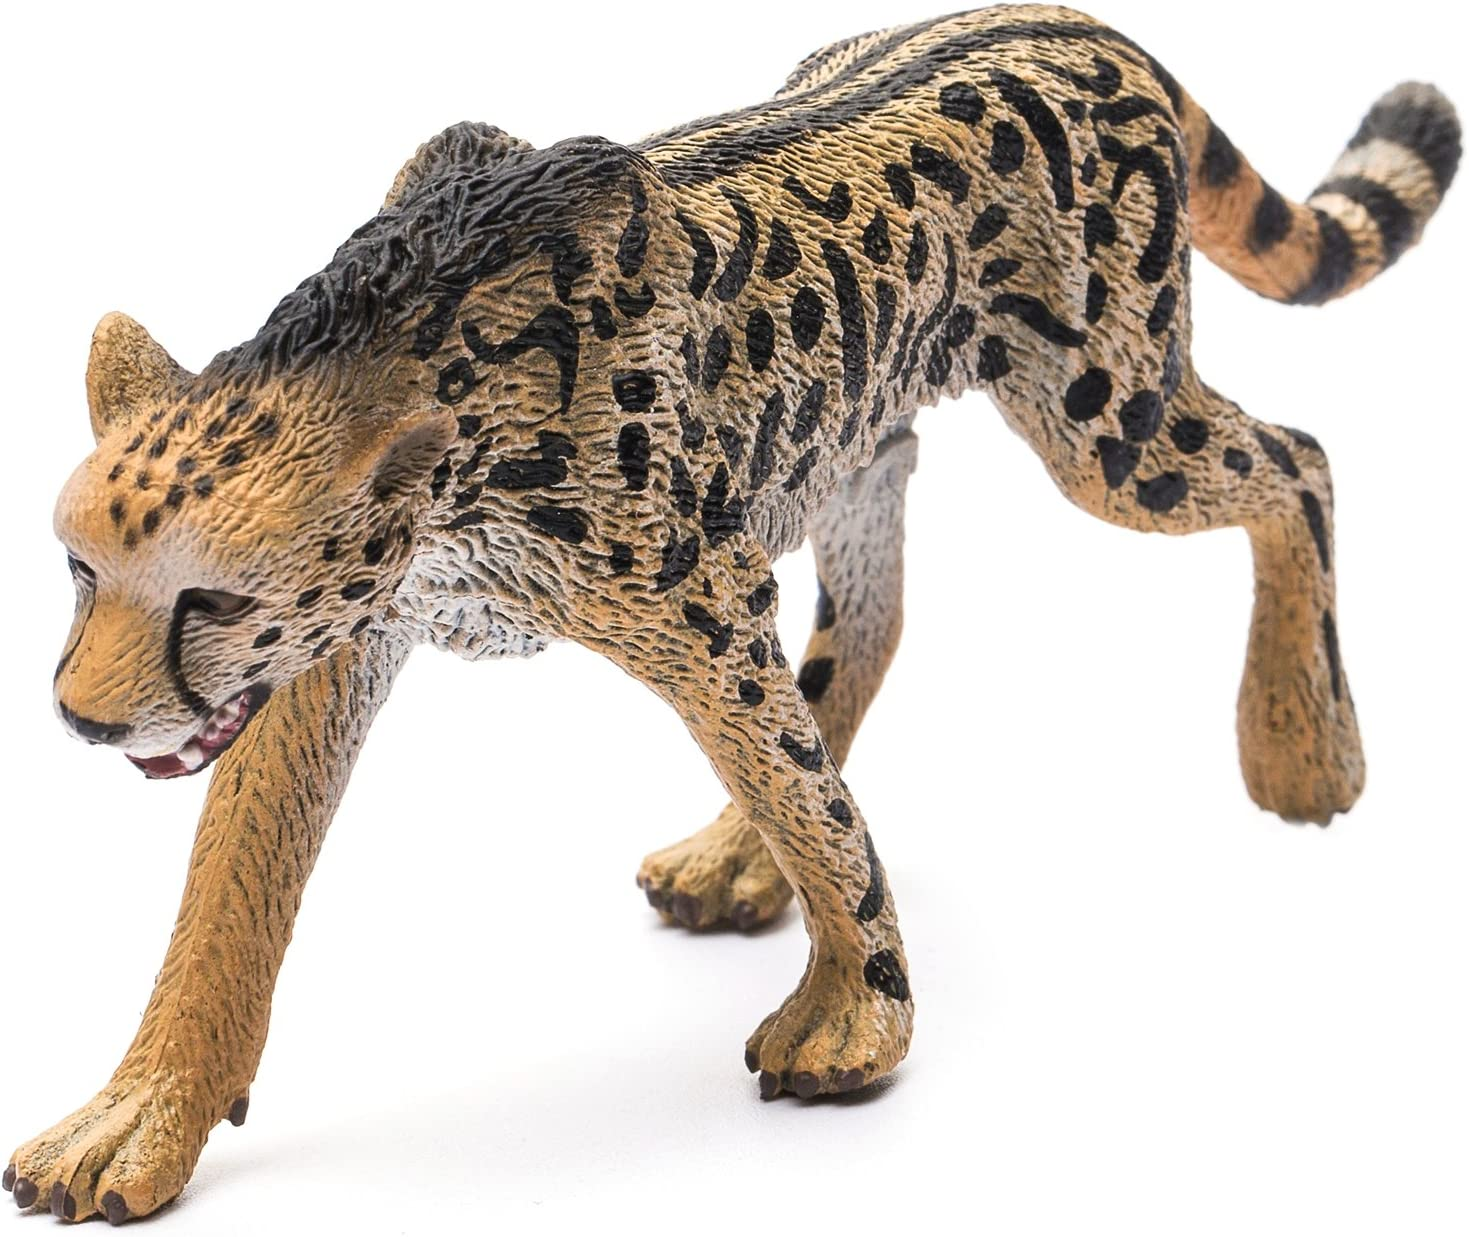 king of cats also schleich avail CollectA African Lion Animals figure model.